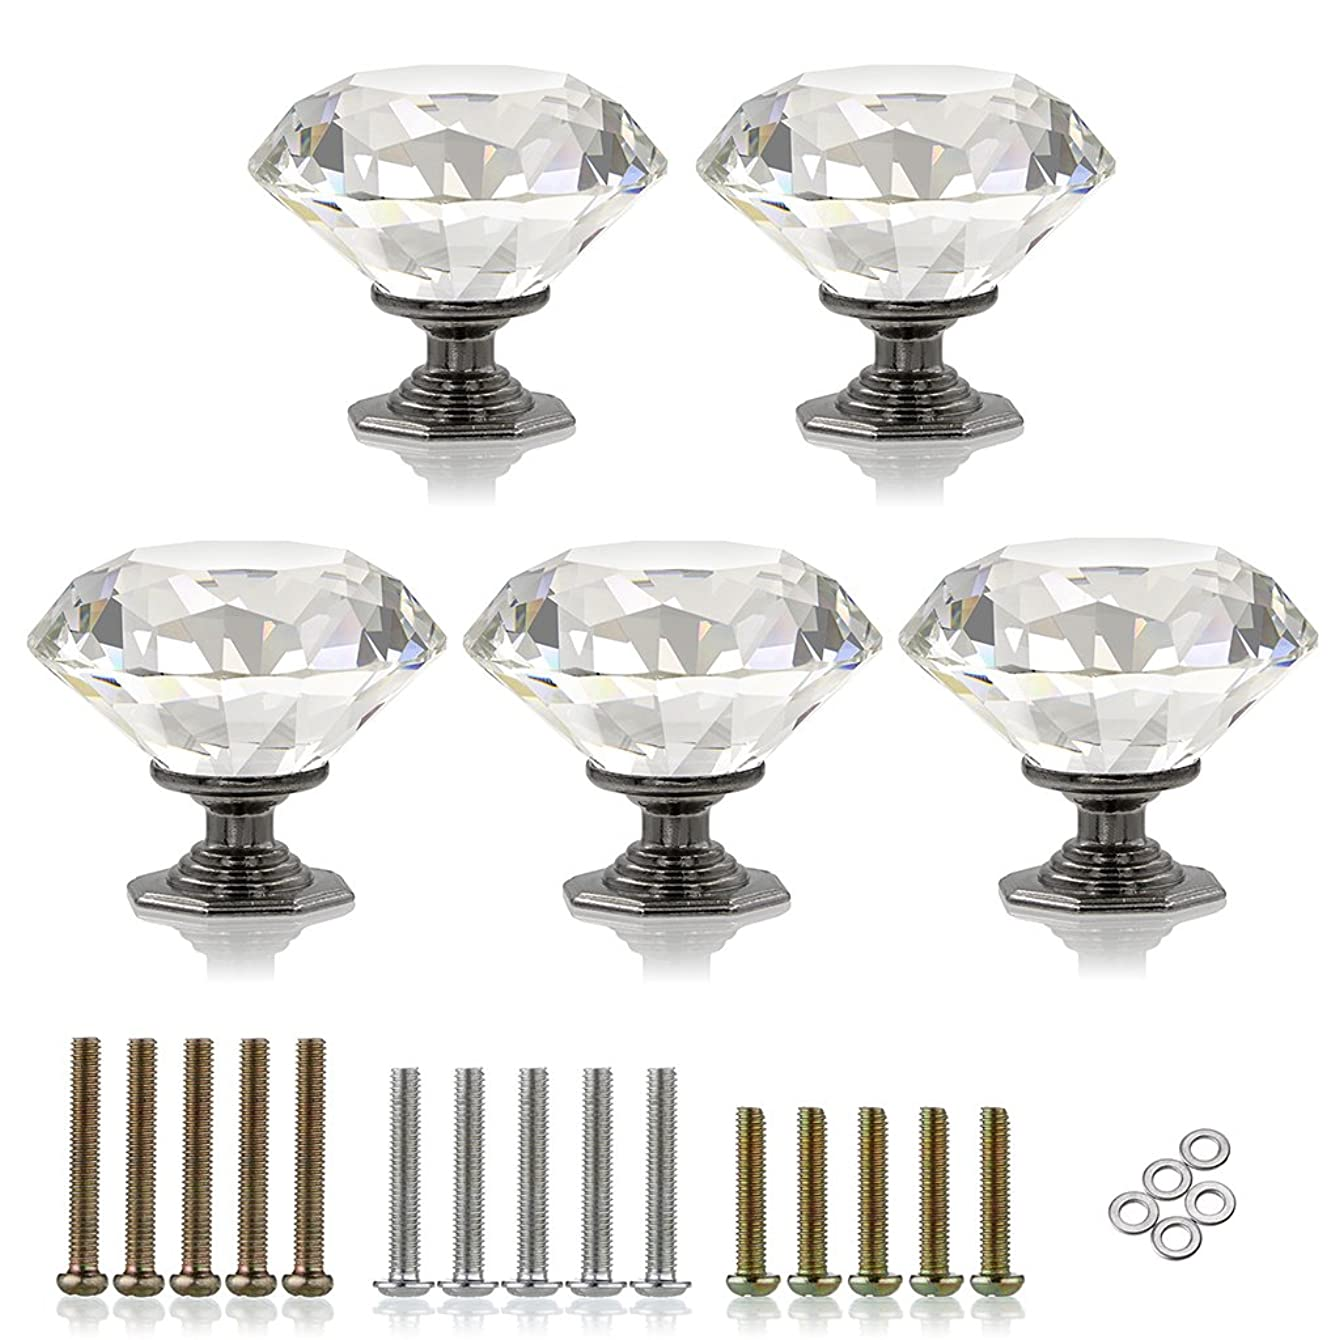 Sumnacon 50MM Diamond Shape Clear Crystal Glass Door Knobs with 3 kinds of Screws, 5 Pieces